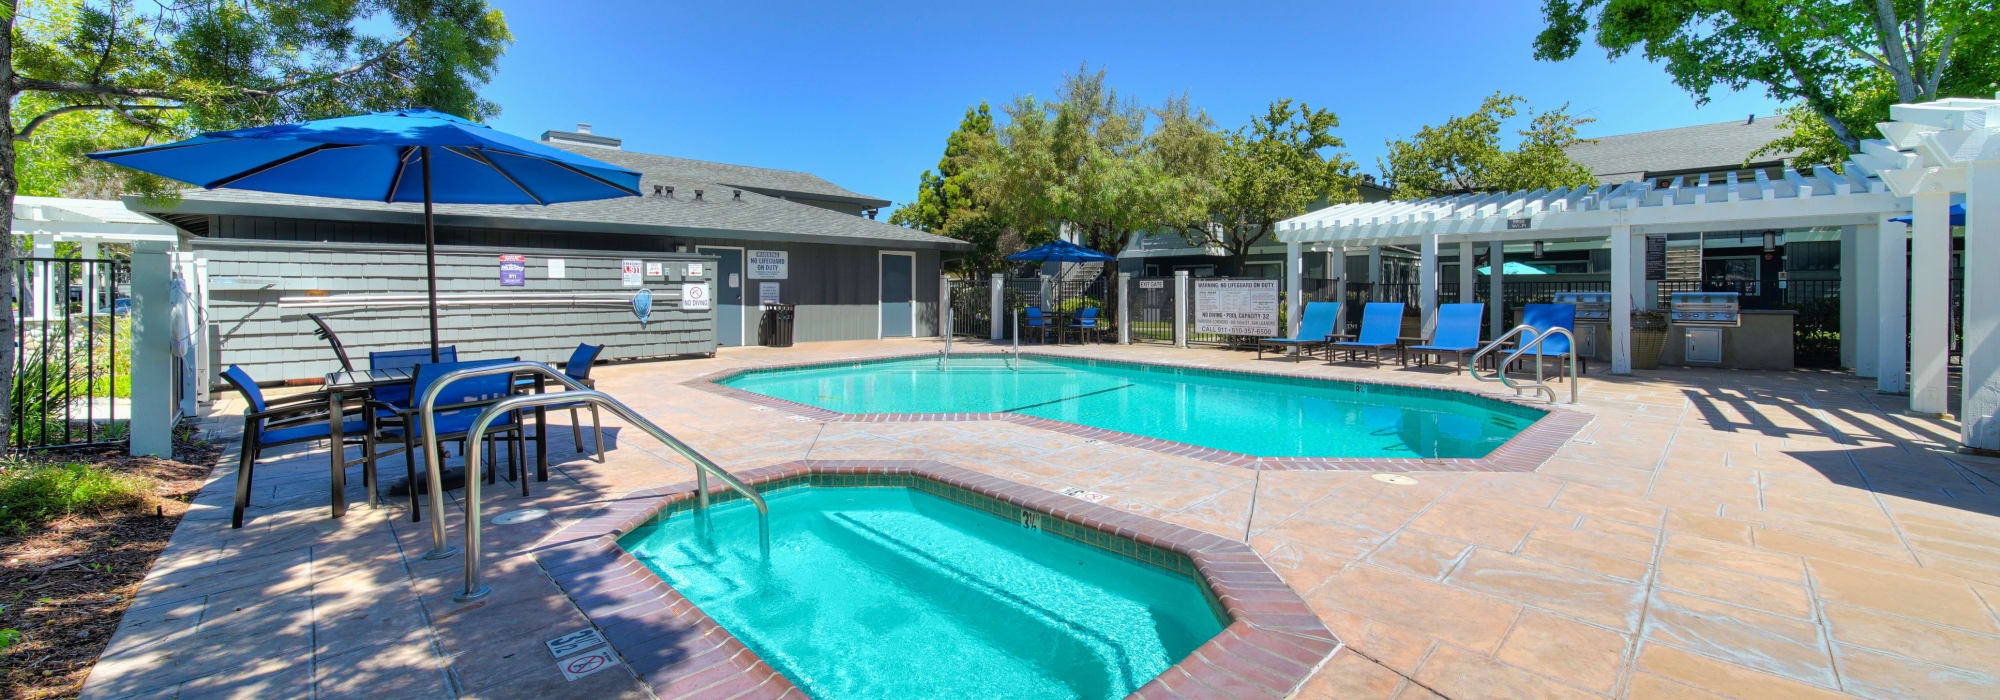 Virtual tours of Parkside Commons Apartments in San Leandro, California